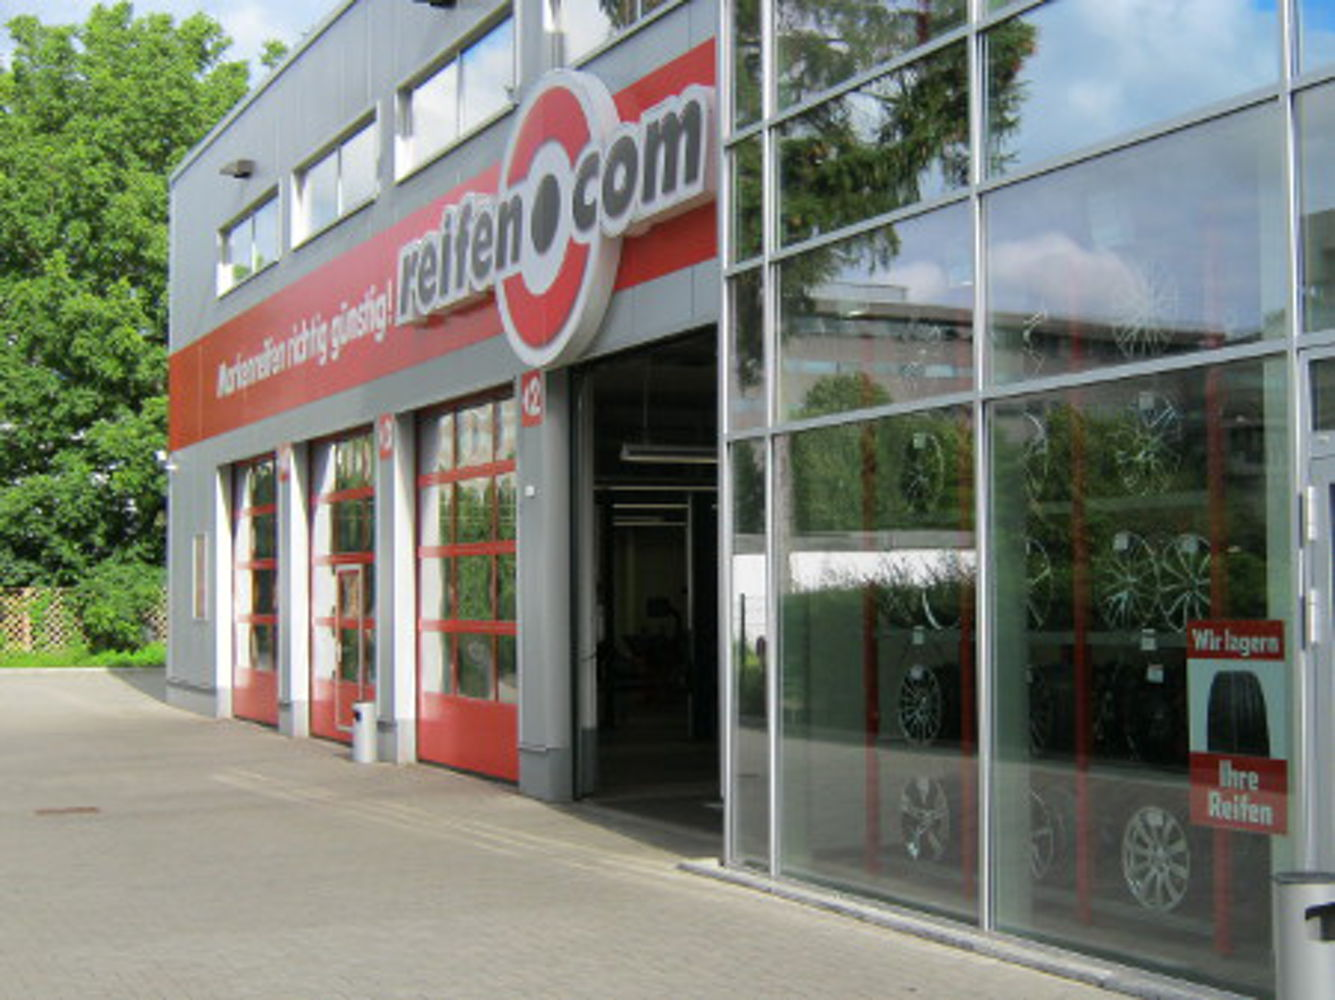 reifen.com-branch in Hamburg Bramfeld